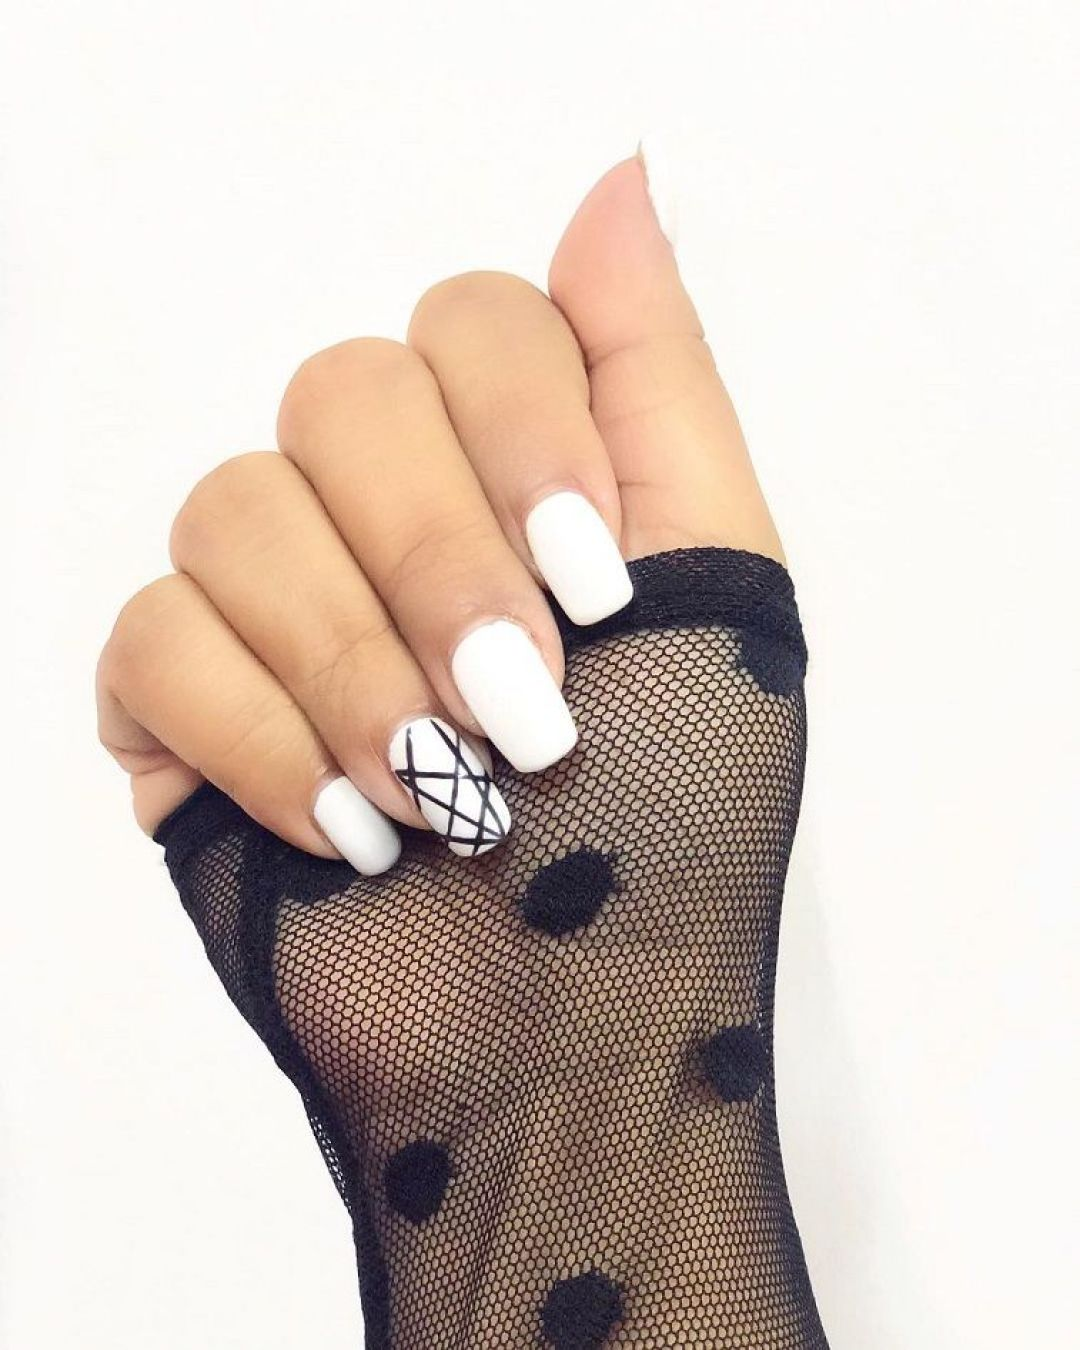 14 Geometric Nail Art Design ideas to try,triangle nail art, geometric nail designs,modern nail art,prom nail art design #promnail #nailartdesign #geometric